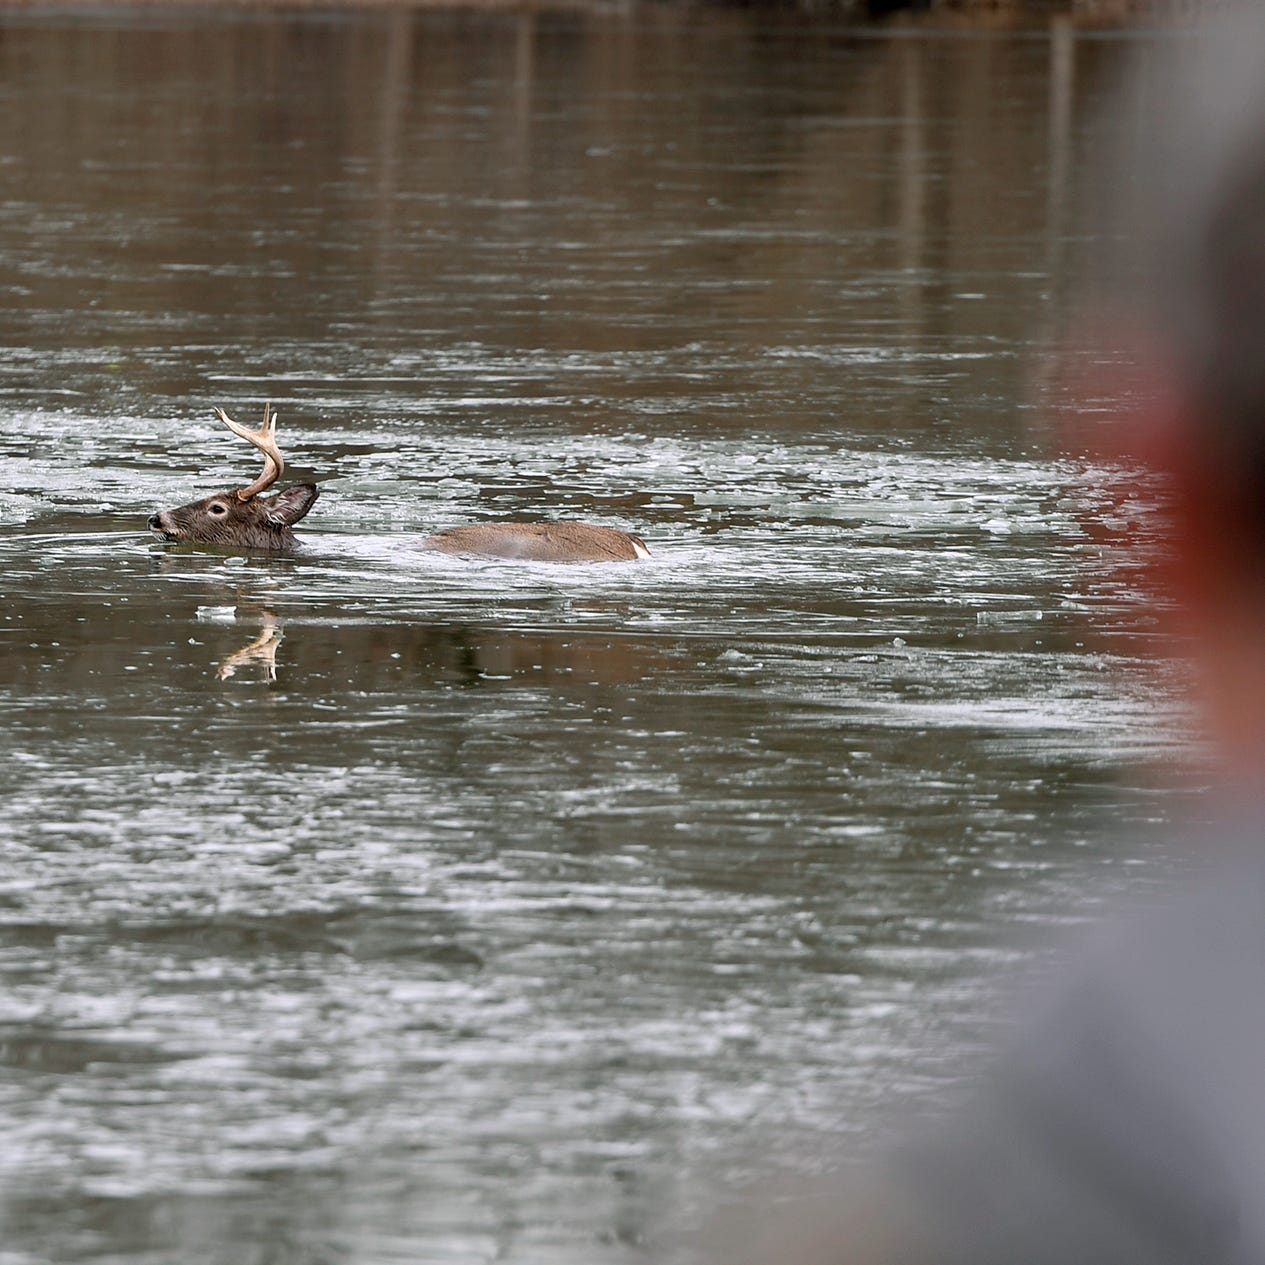 'Sad news': Despite rescuers' efforts, buck pulled from Gifford Pinchot lake dies